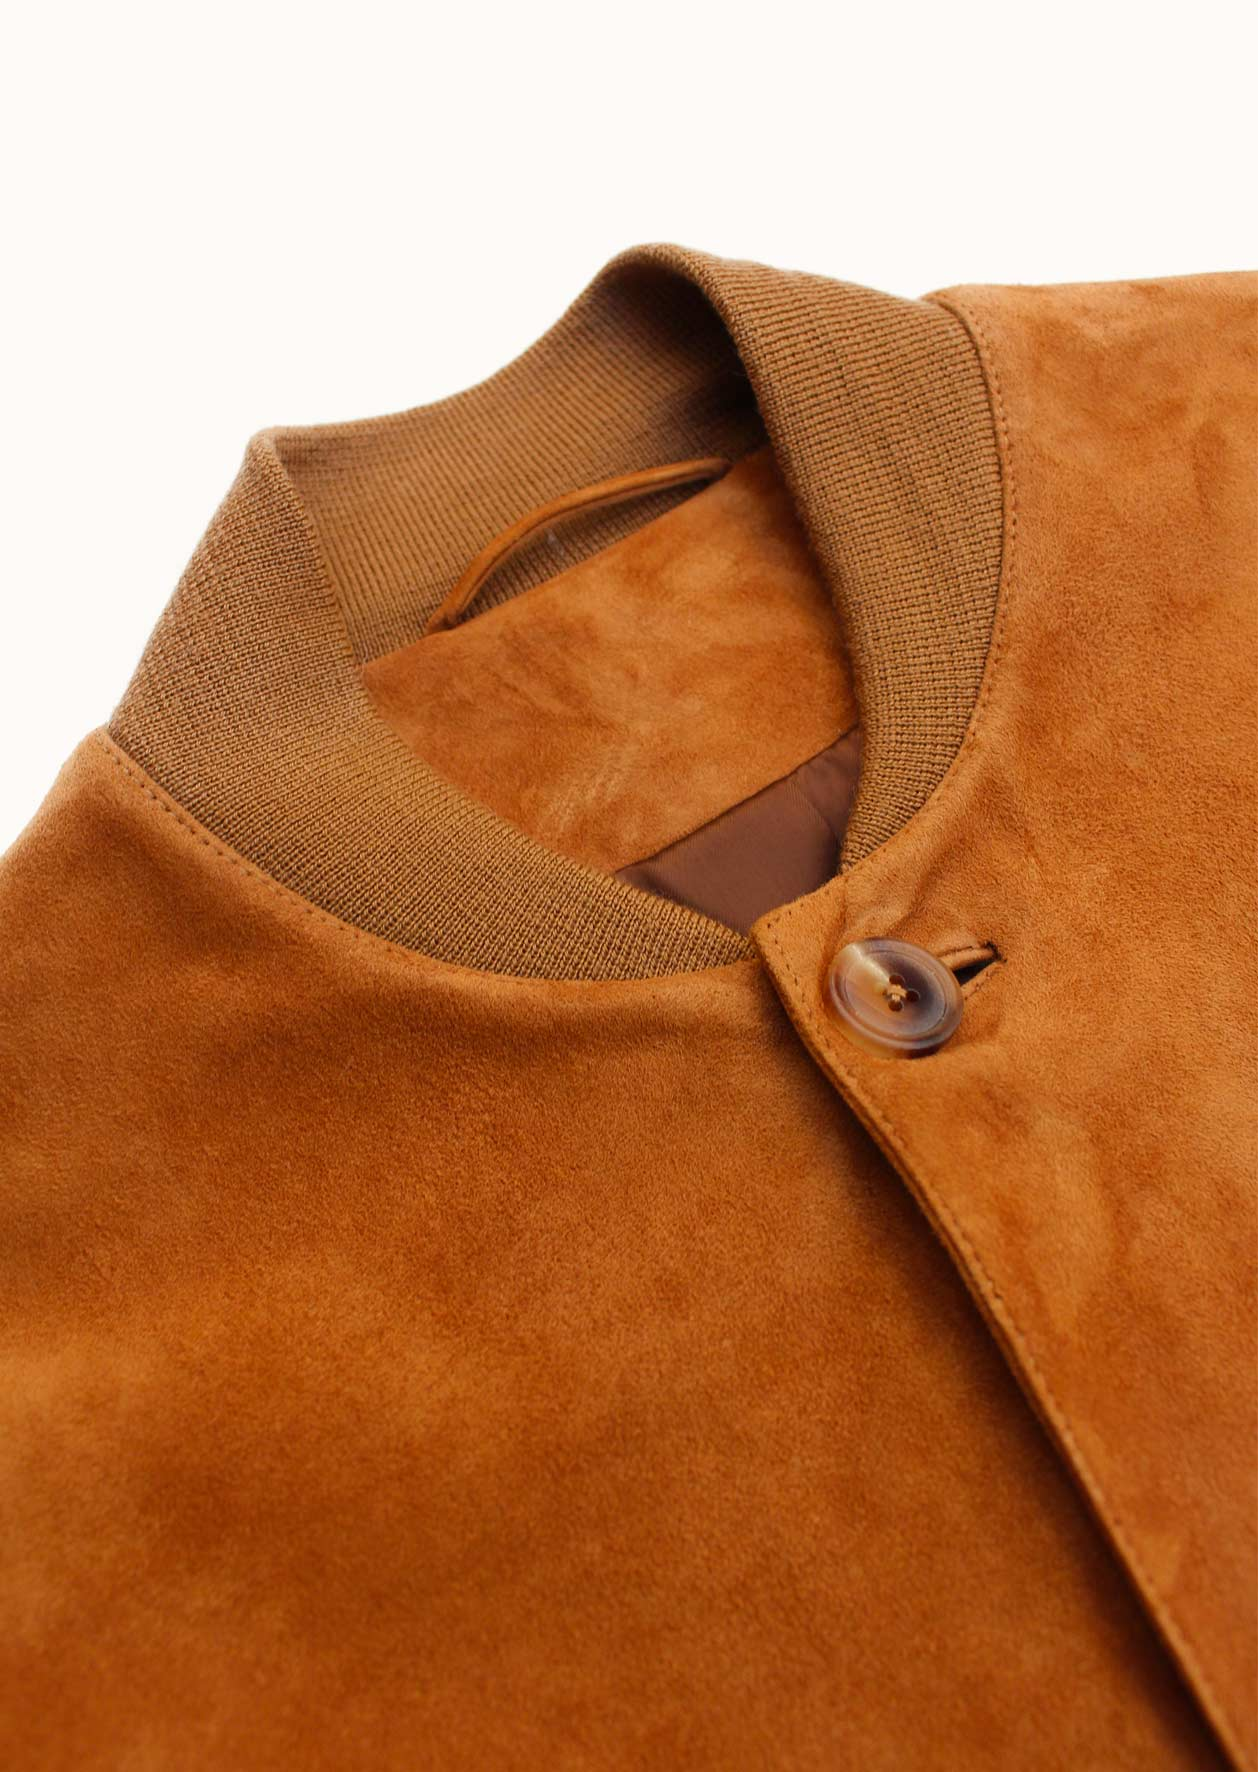 Teddy jacket - Lamb suede leather - Hazelnut - De Bonne Facture